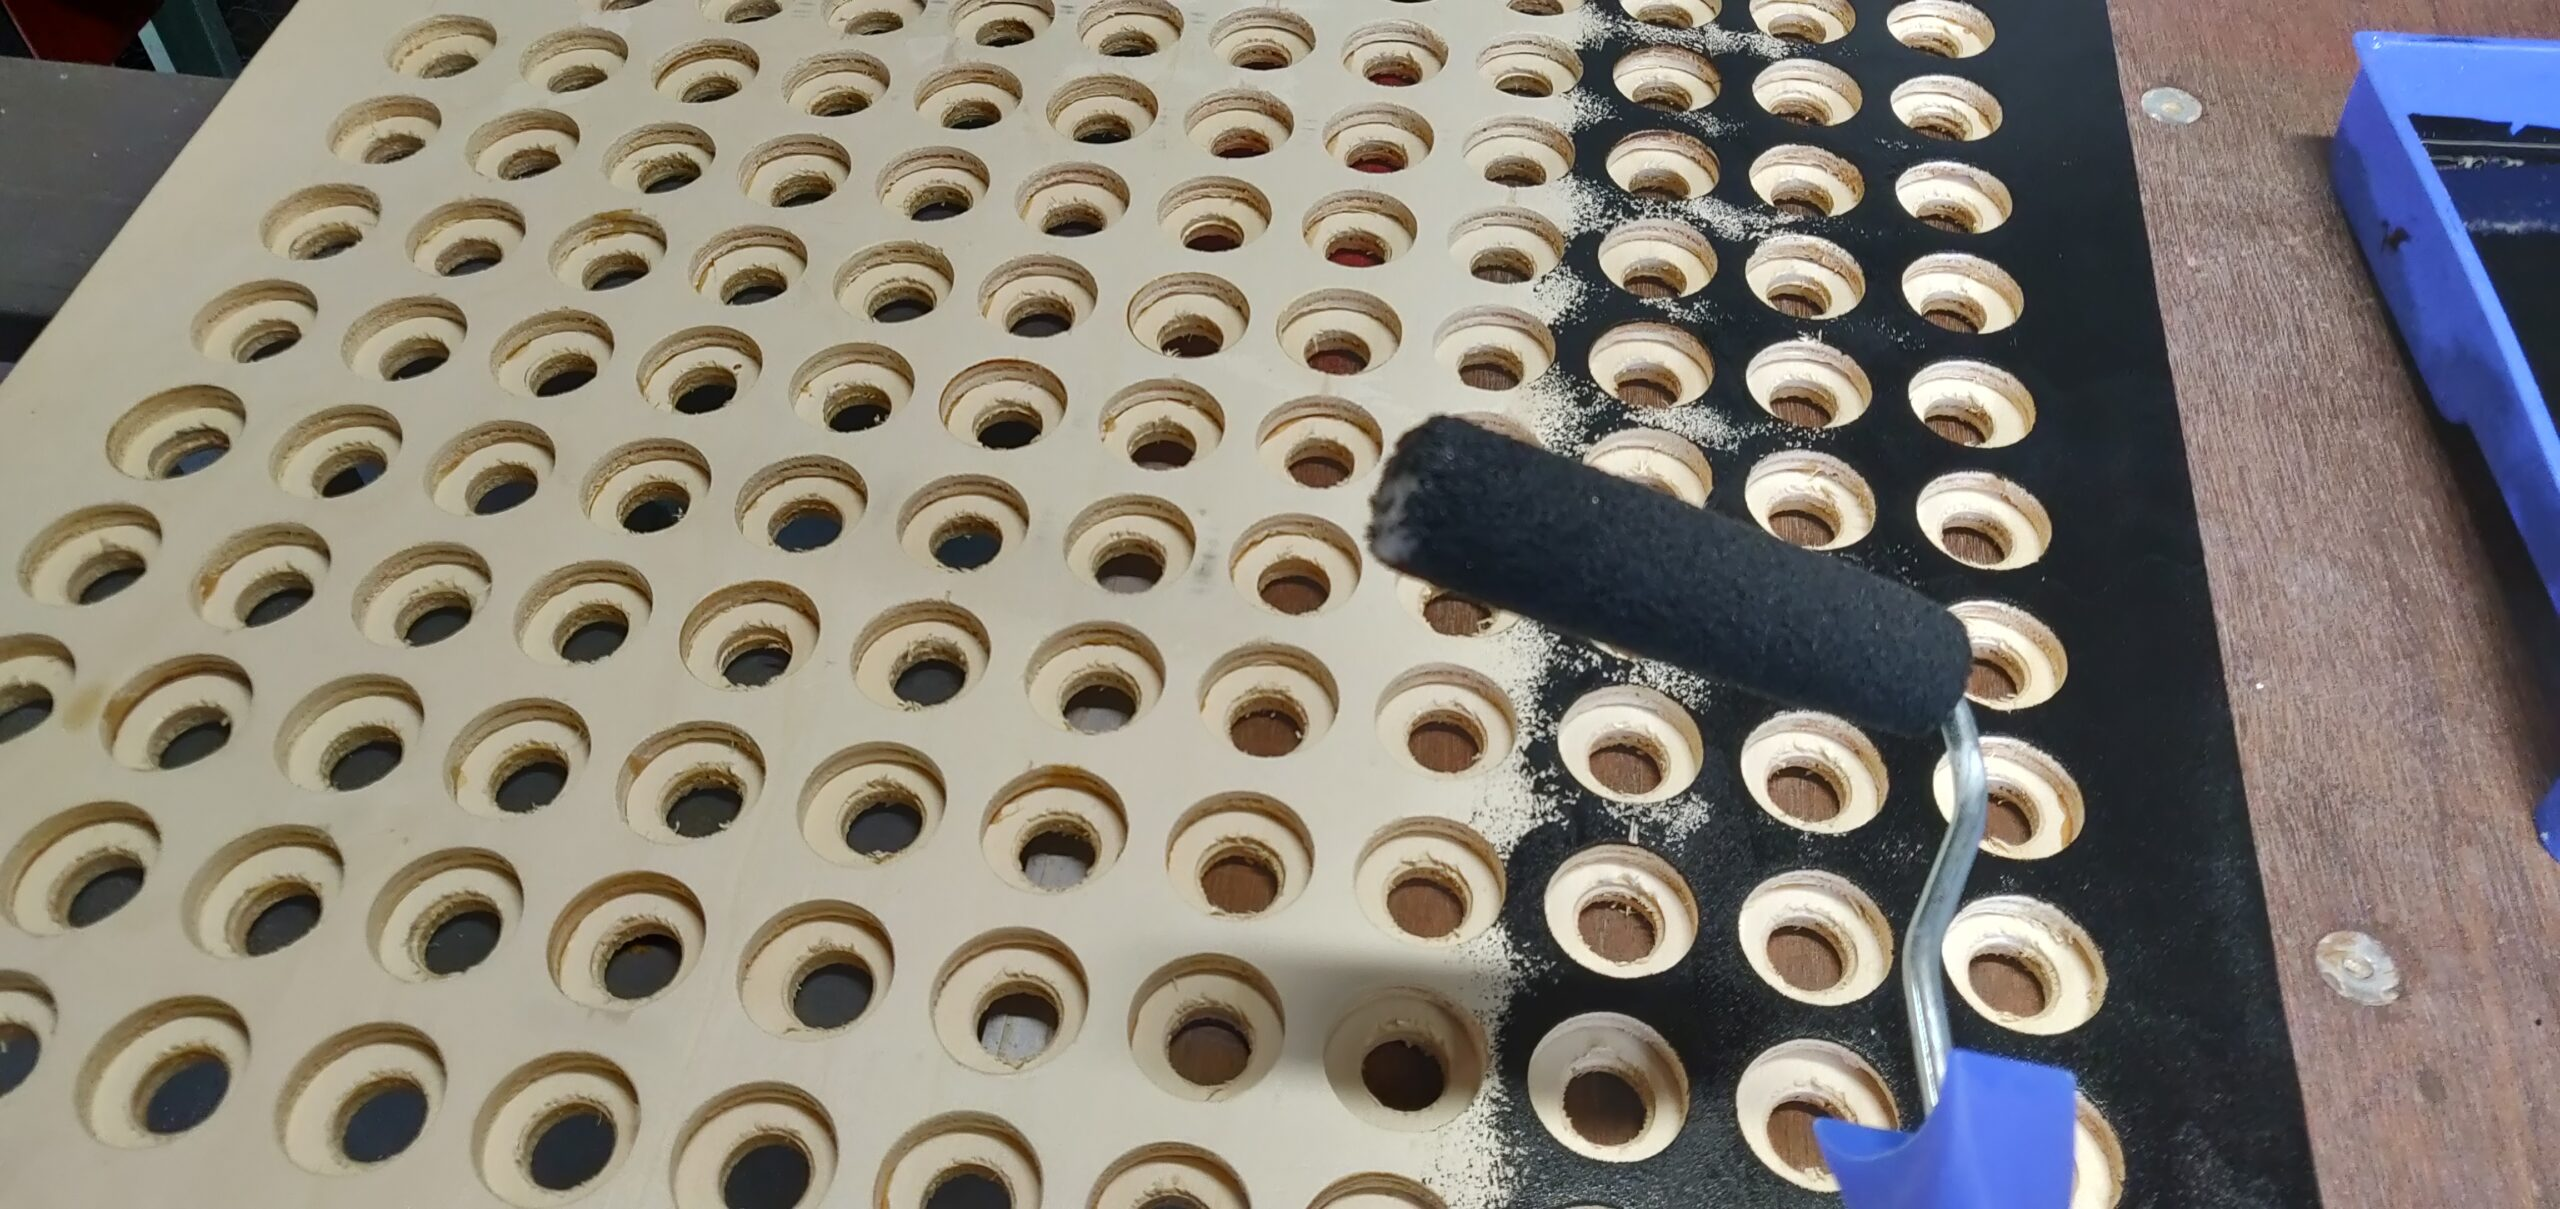 Fabrication de la matrice LED Ping-pong